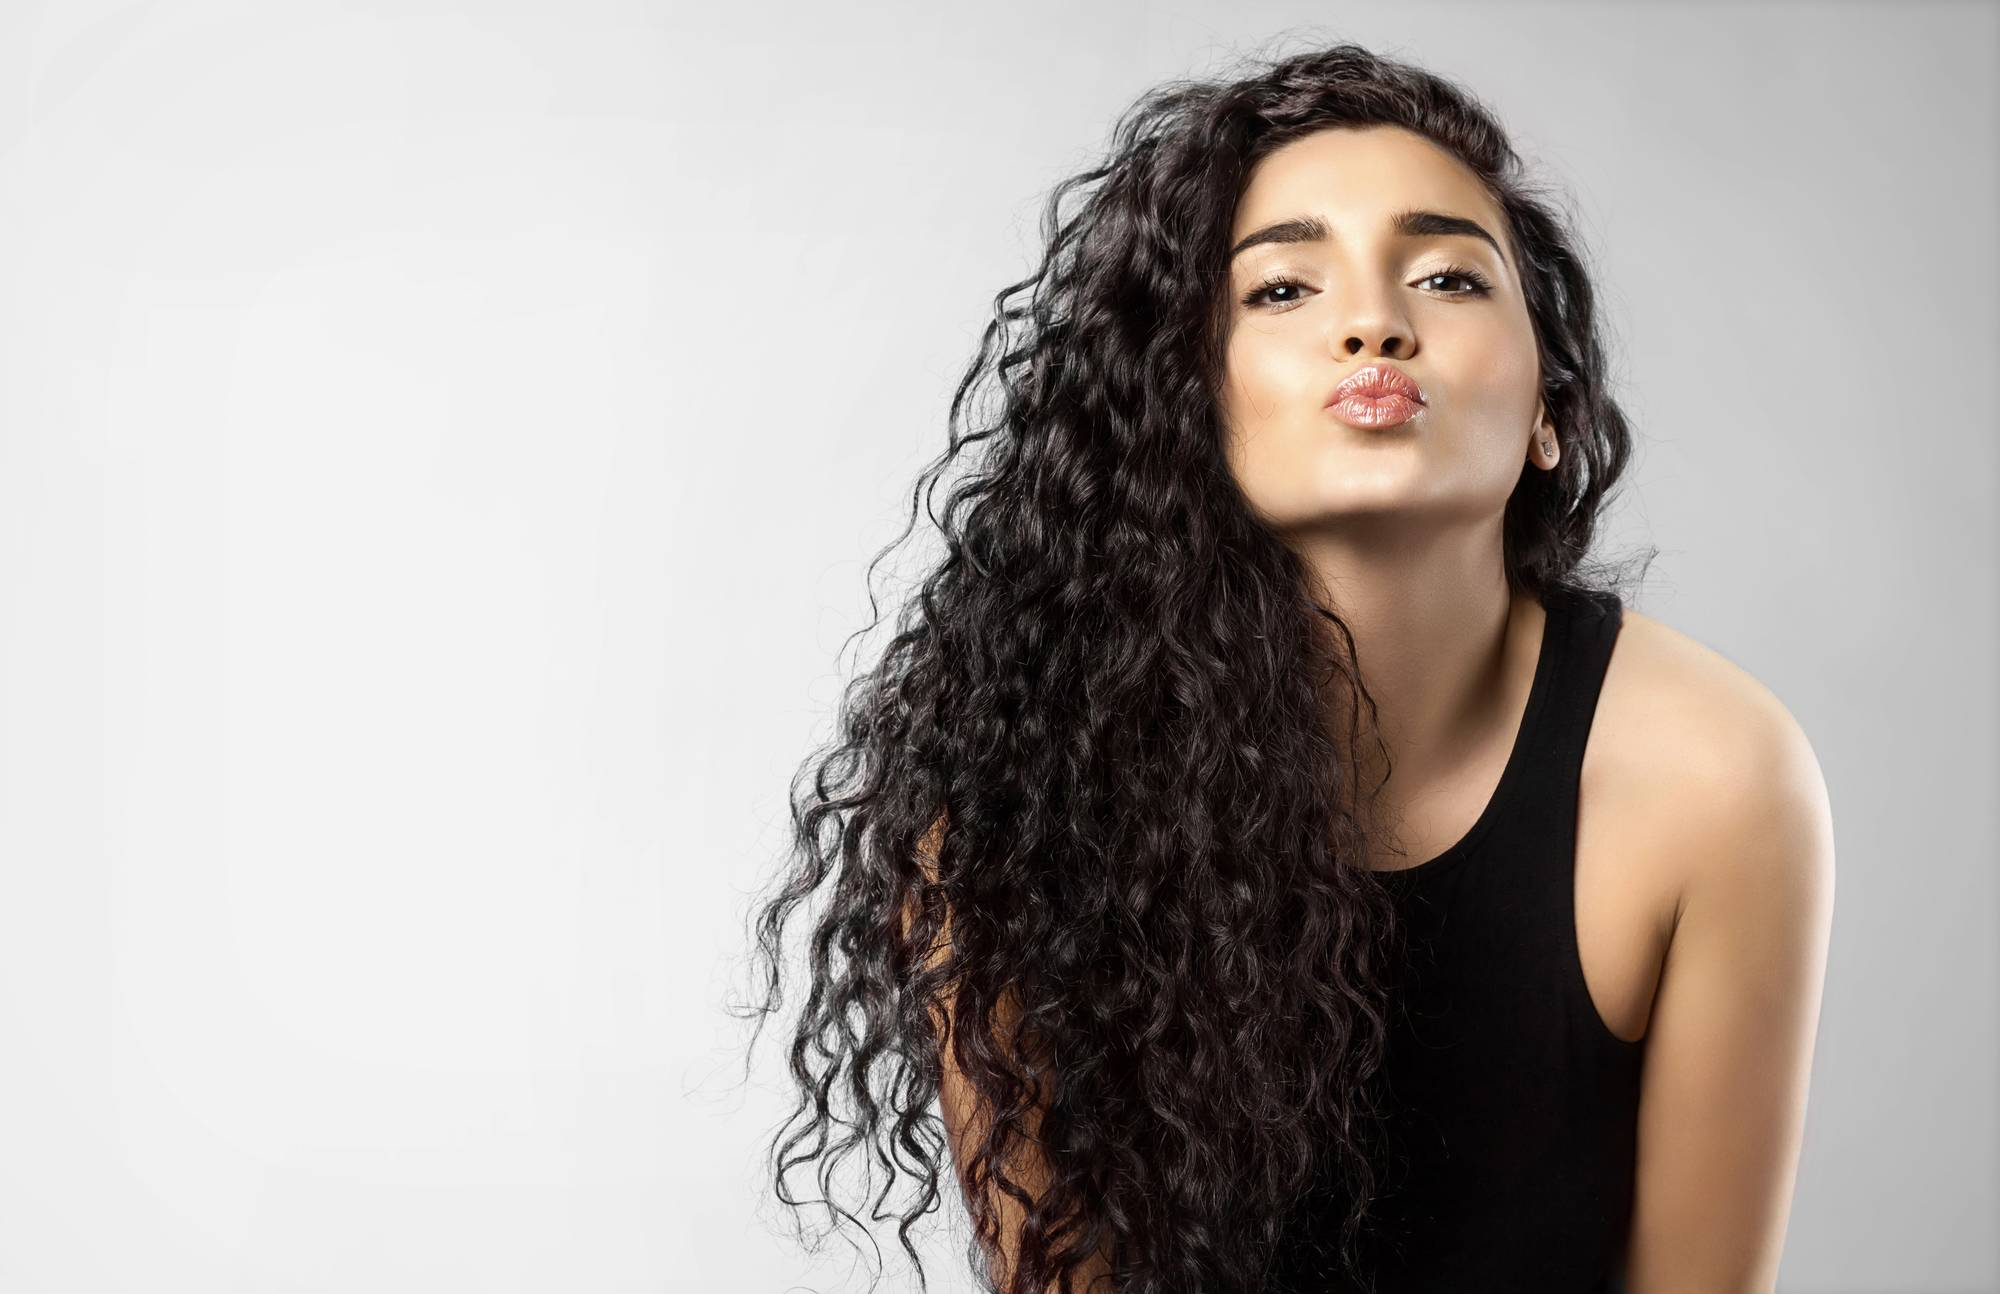 tight coils are new hairstyles for spring we love